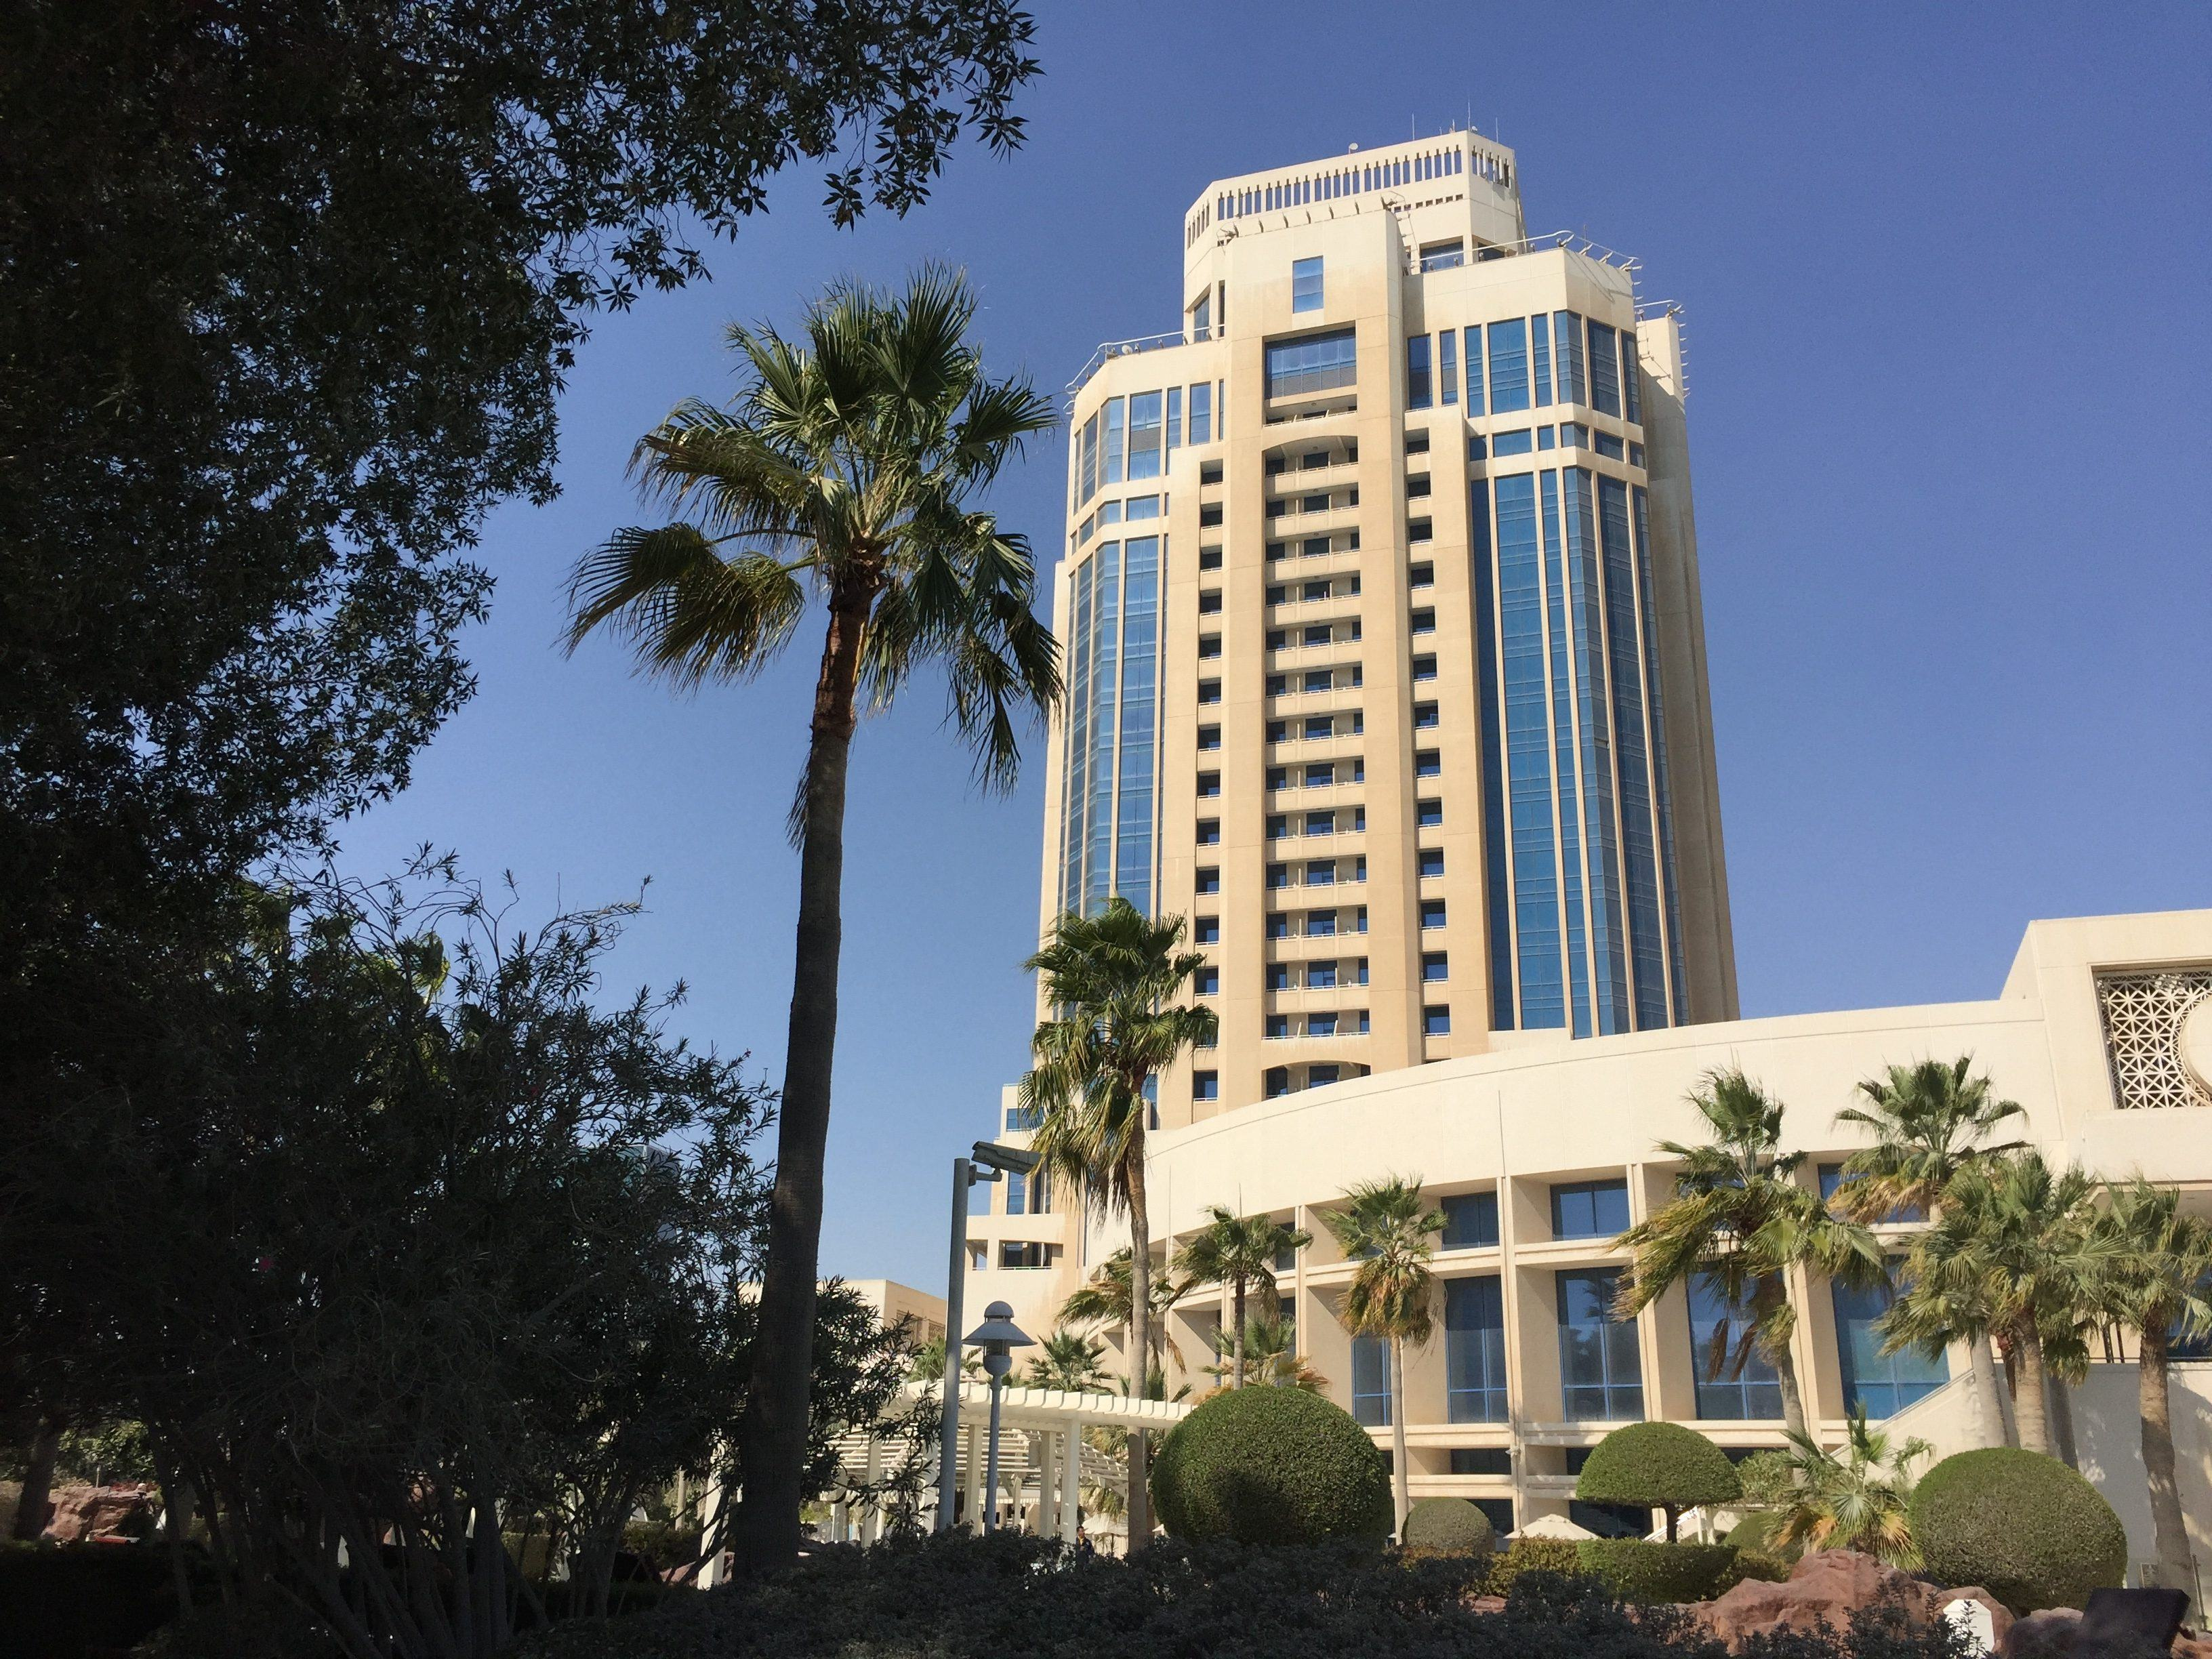 The Ritz-Carlton-Doha view from the gardens